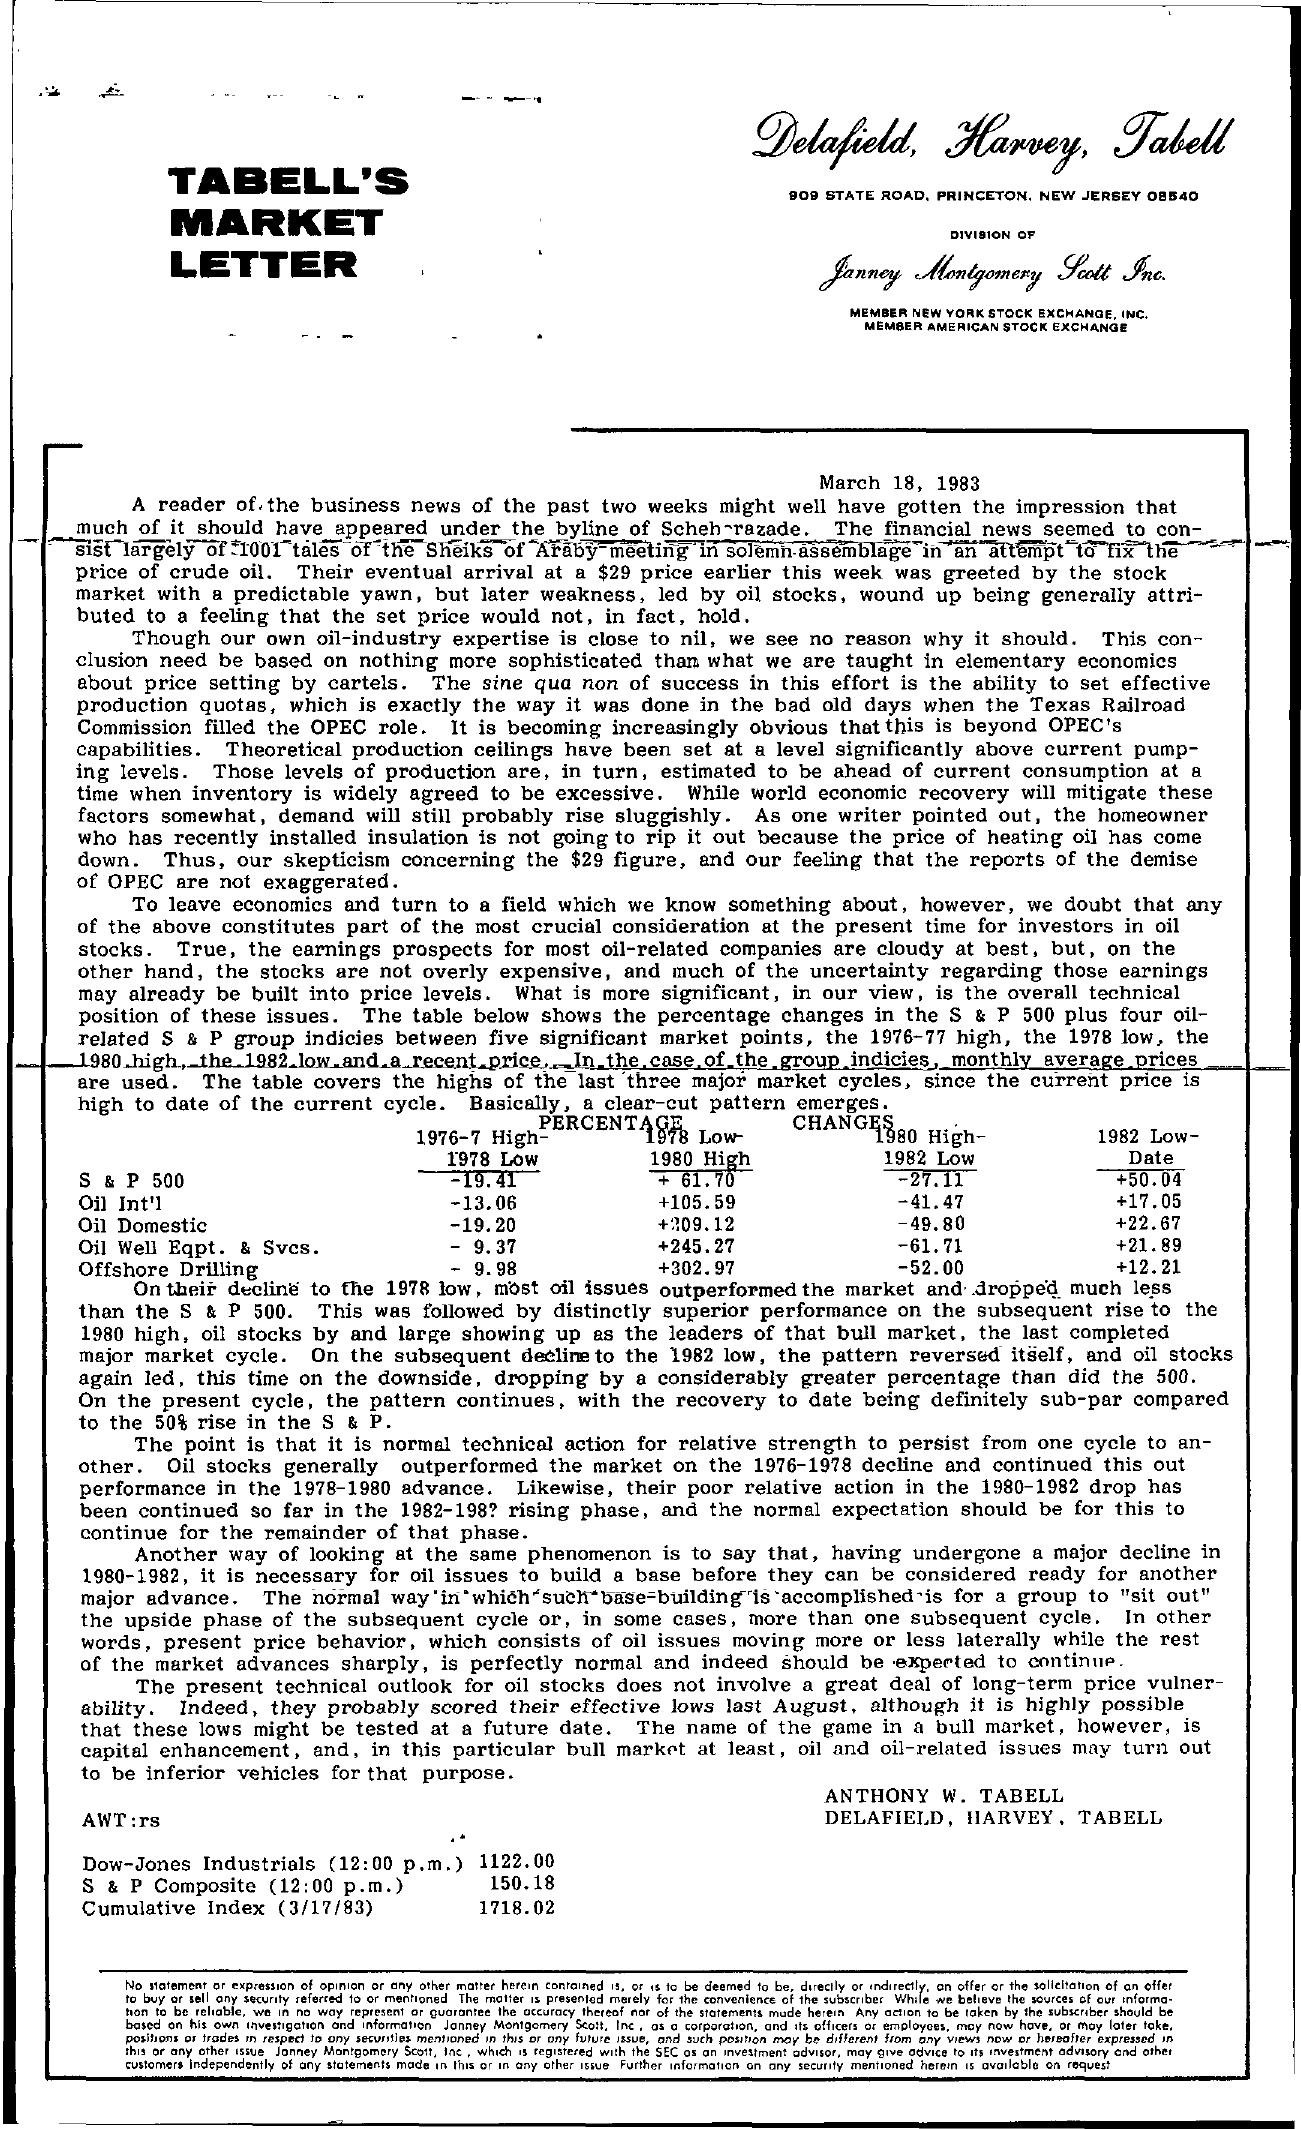 Tabell's Market Letter - March 18, 1983